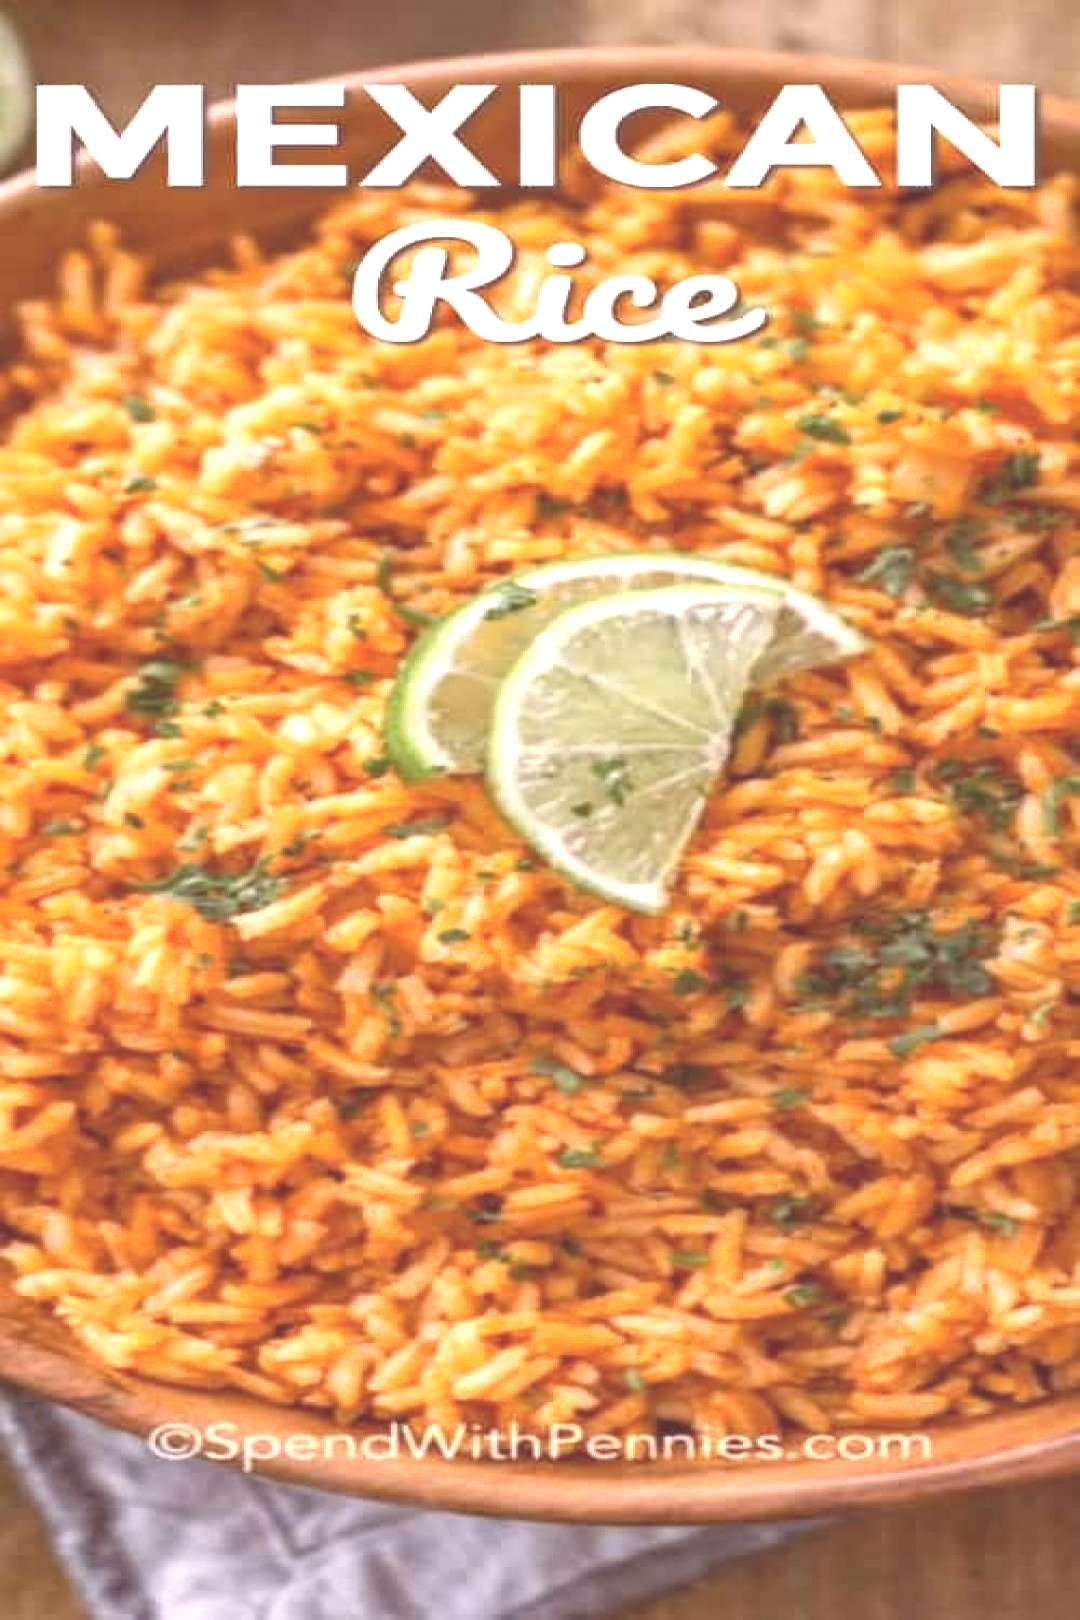 Mexican Rice - Spend With Pennies#mexicanYou can find Pennies and more on our website.Mexican Rice